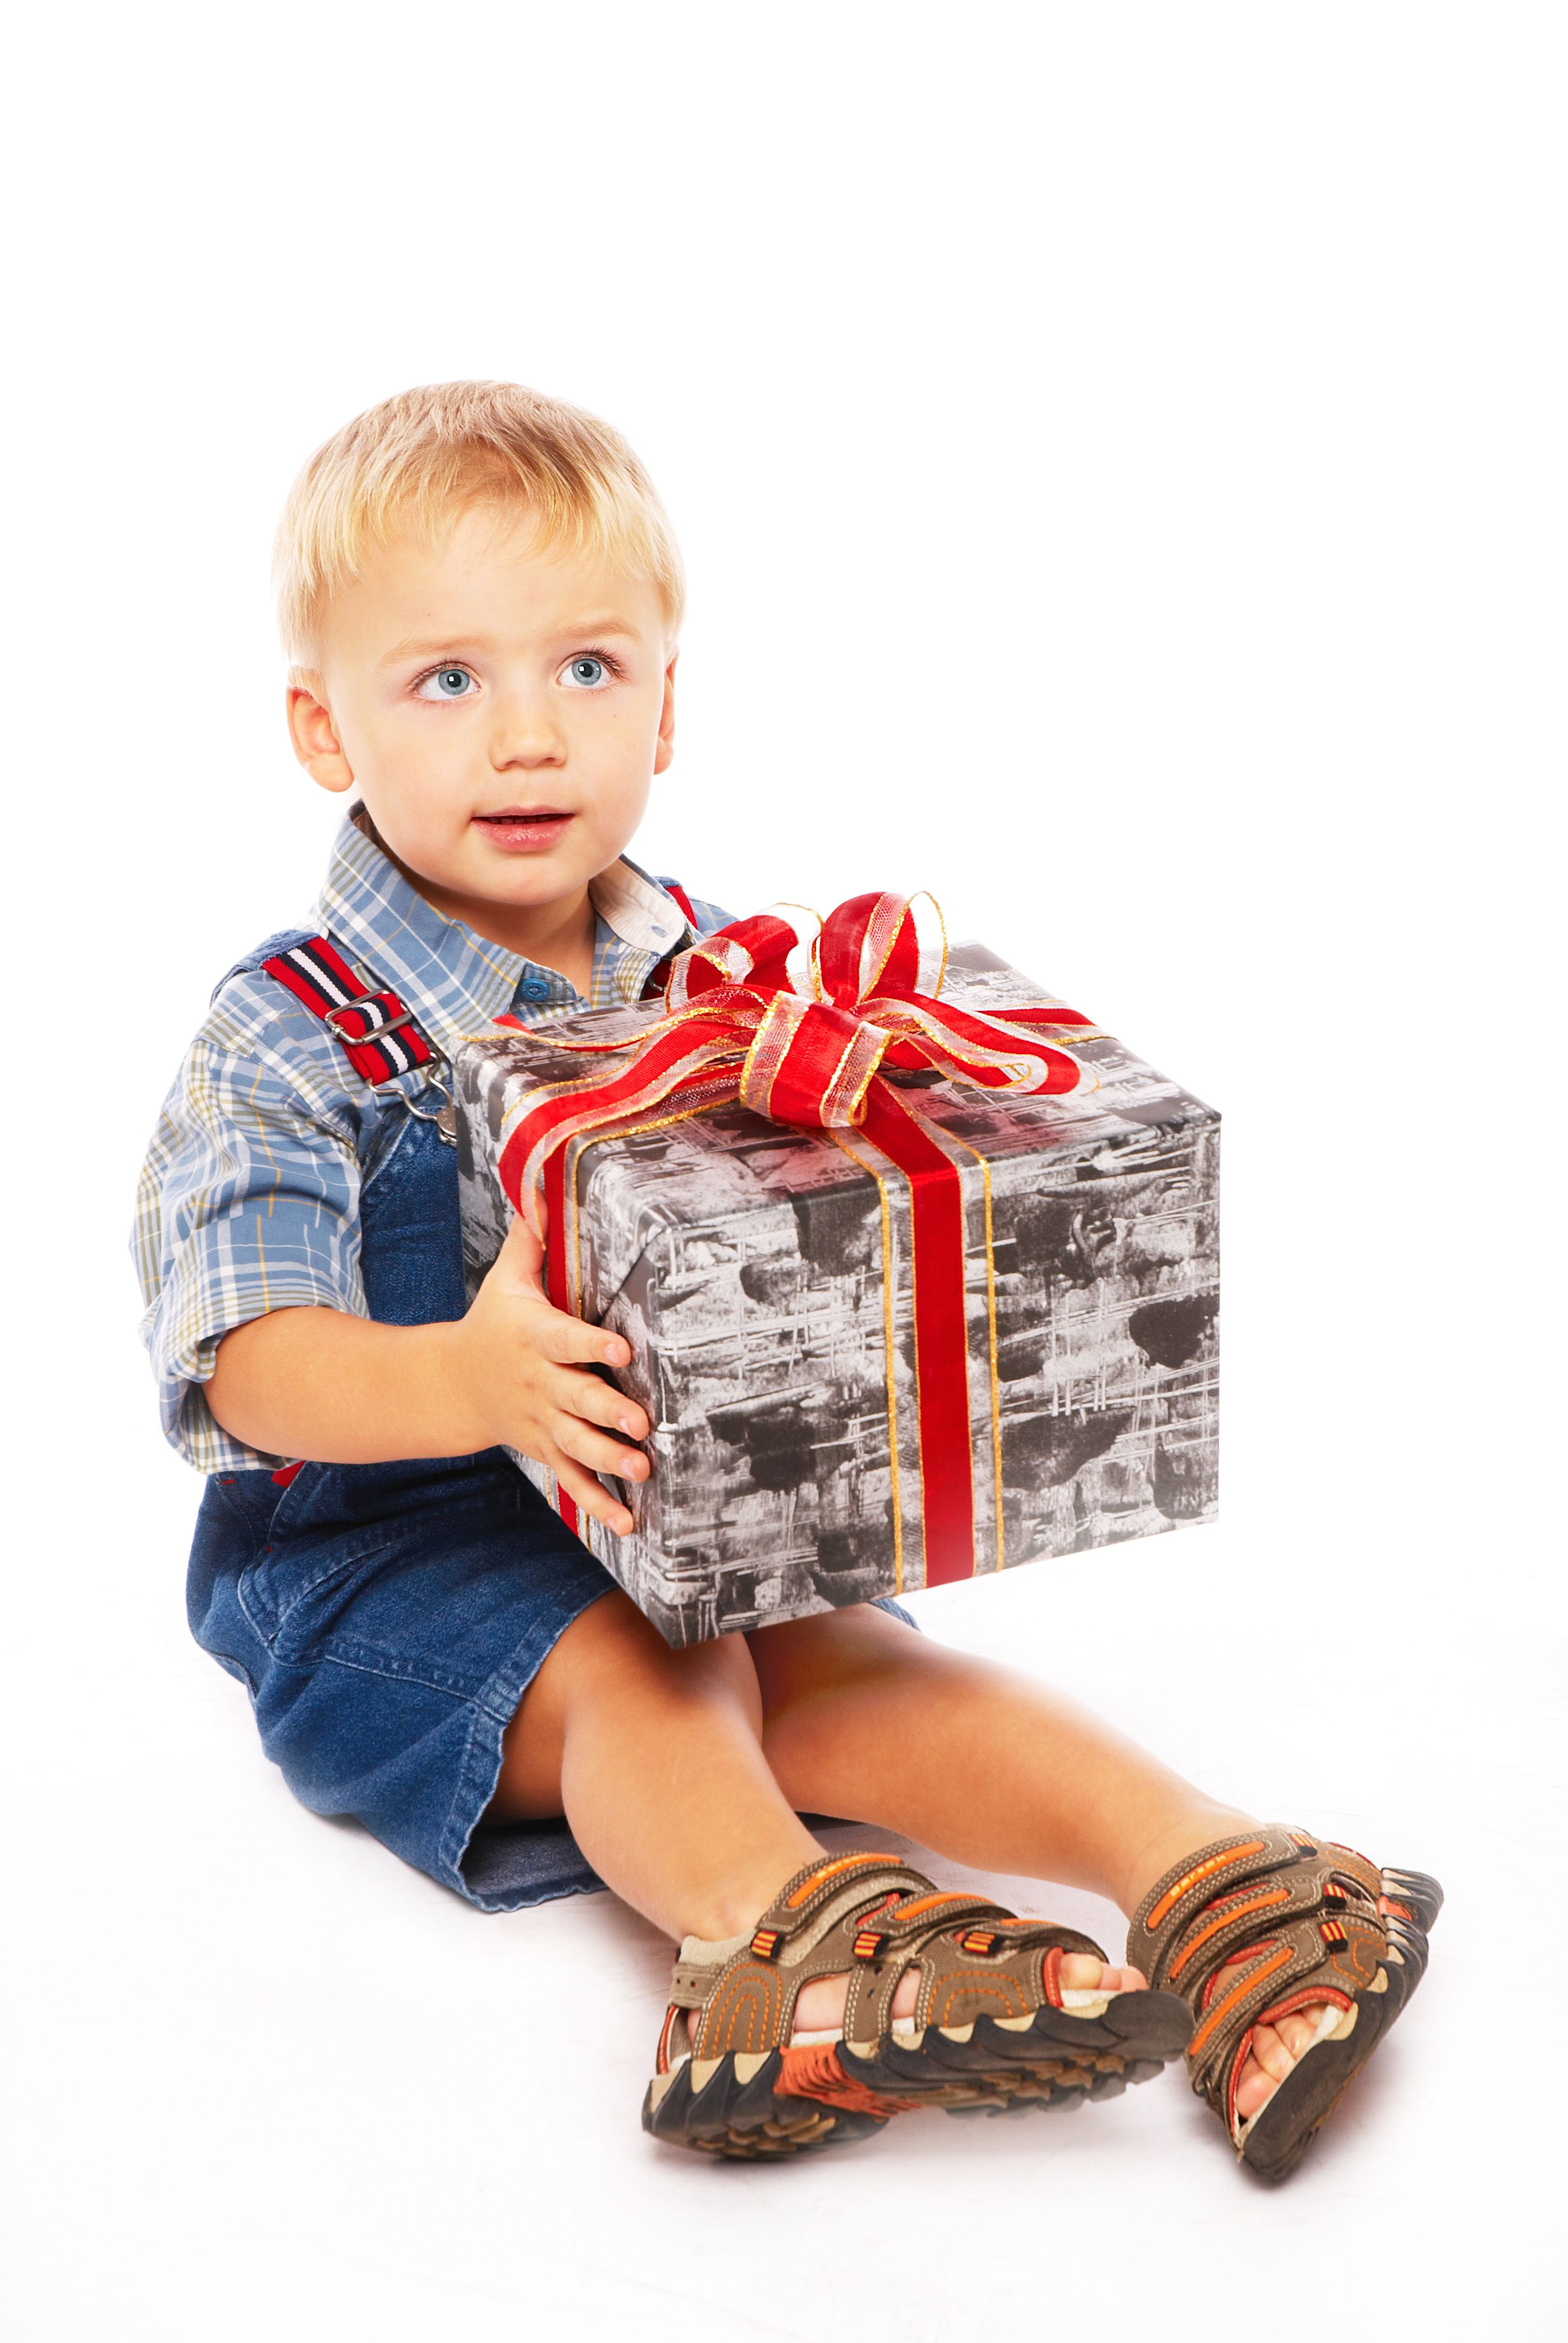 Best Birthday And Christmas T Ideas For A Three Year